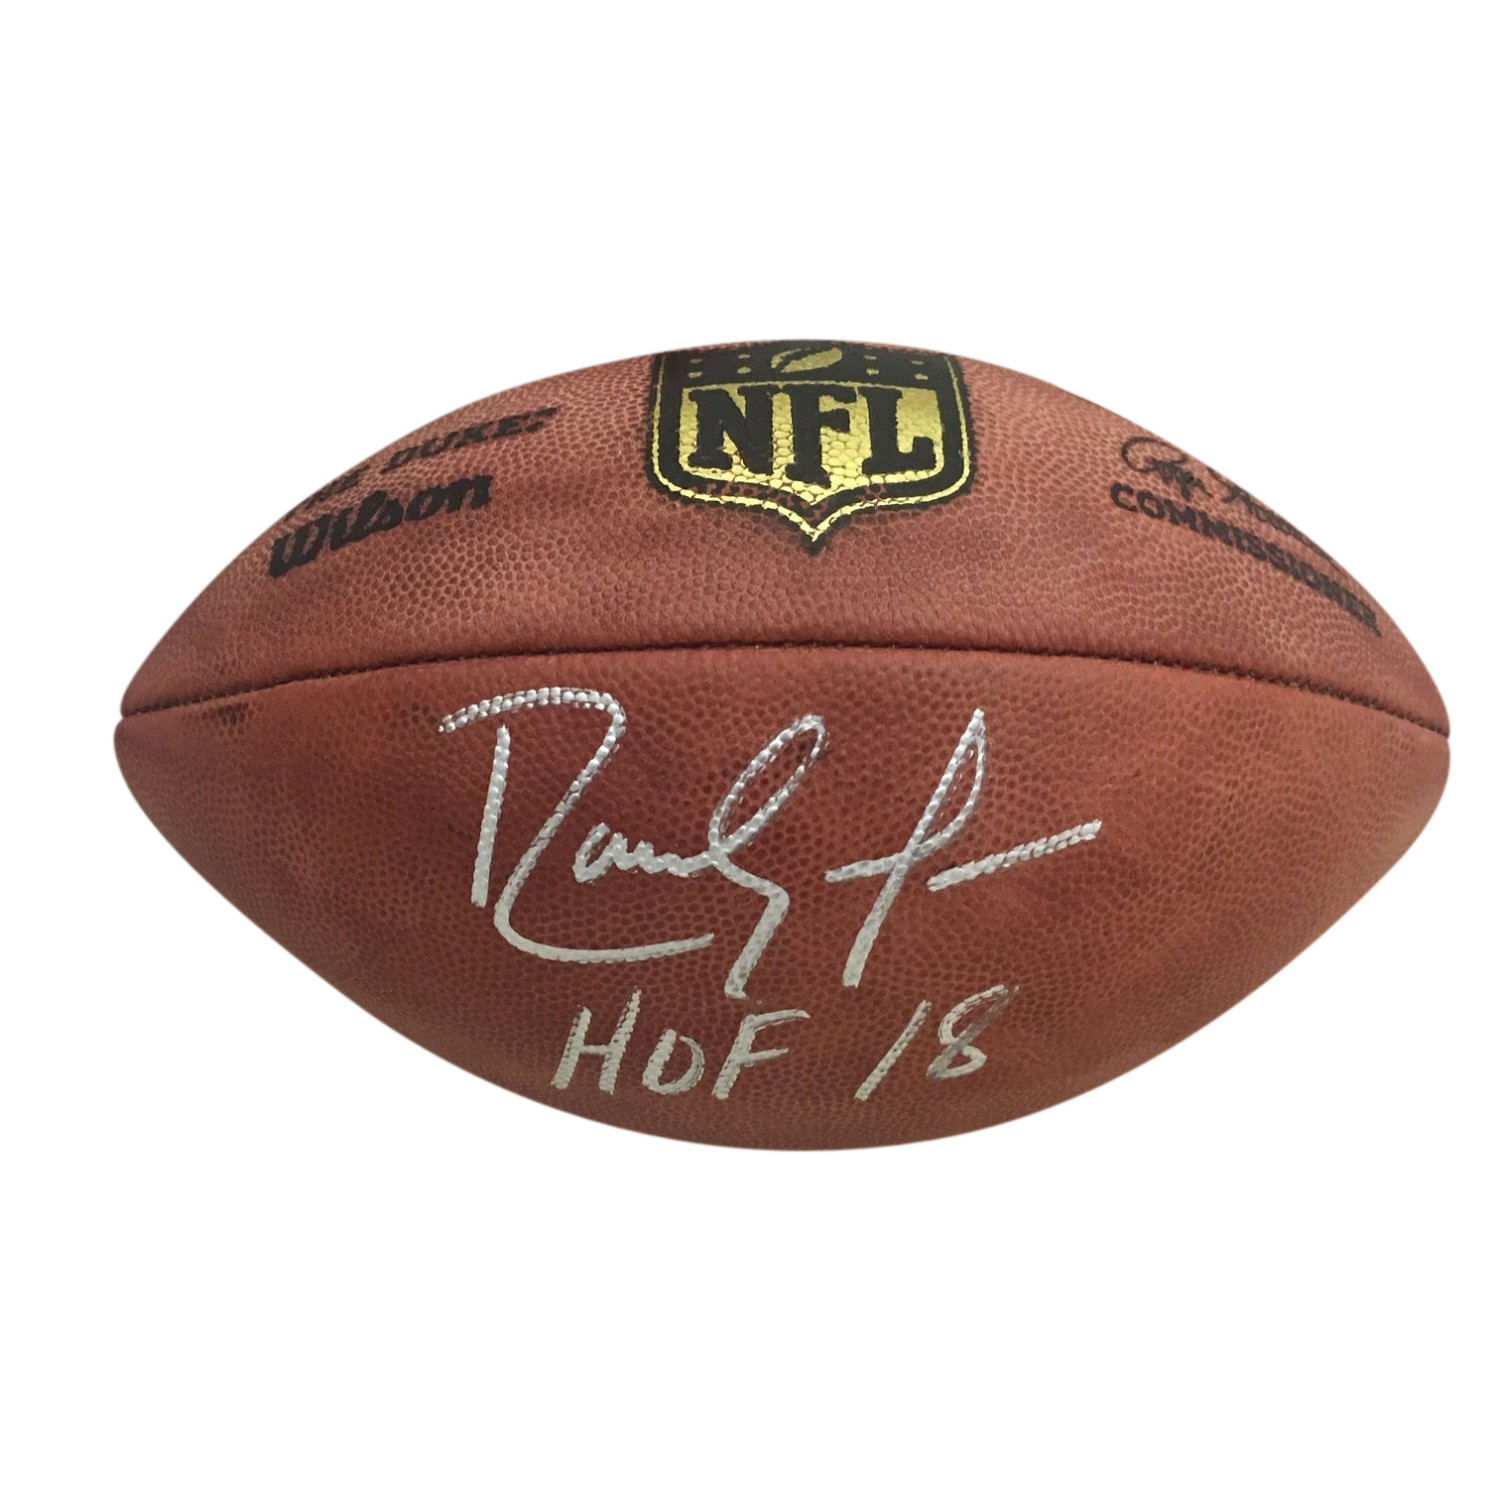 Randy Moss Autographed Minnesota Vikings Hall of Fame HOF 18 Signed NFL Authentic Duke Football Beckett BAS COA